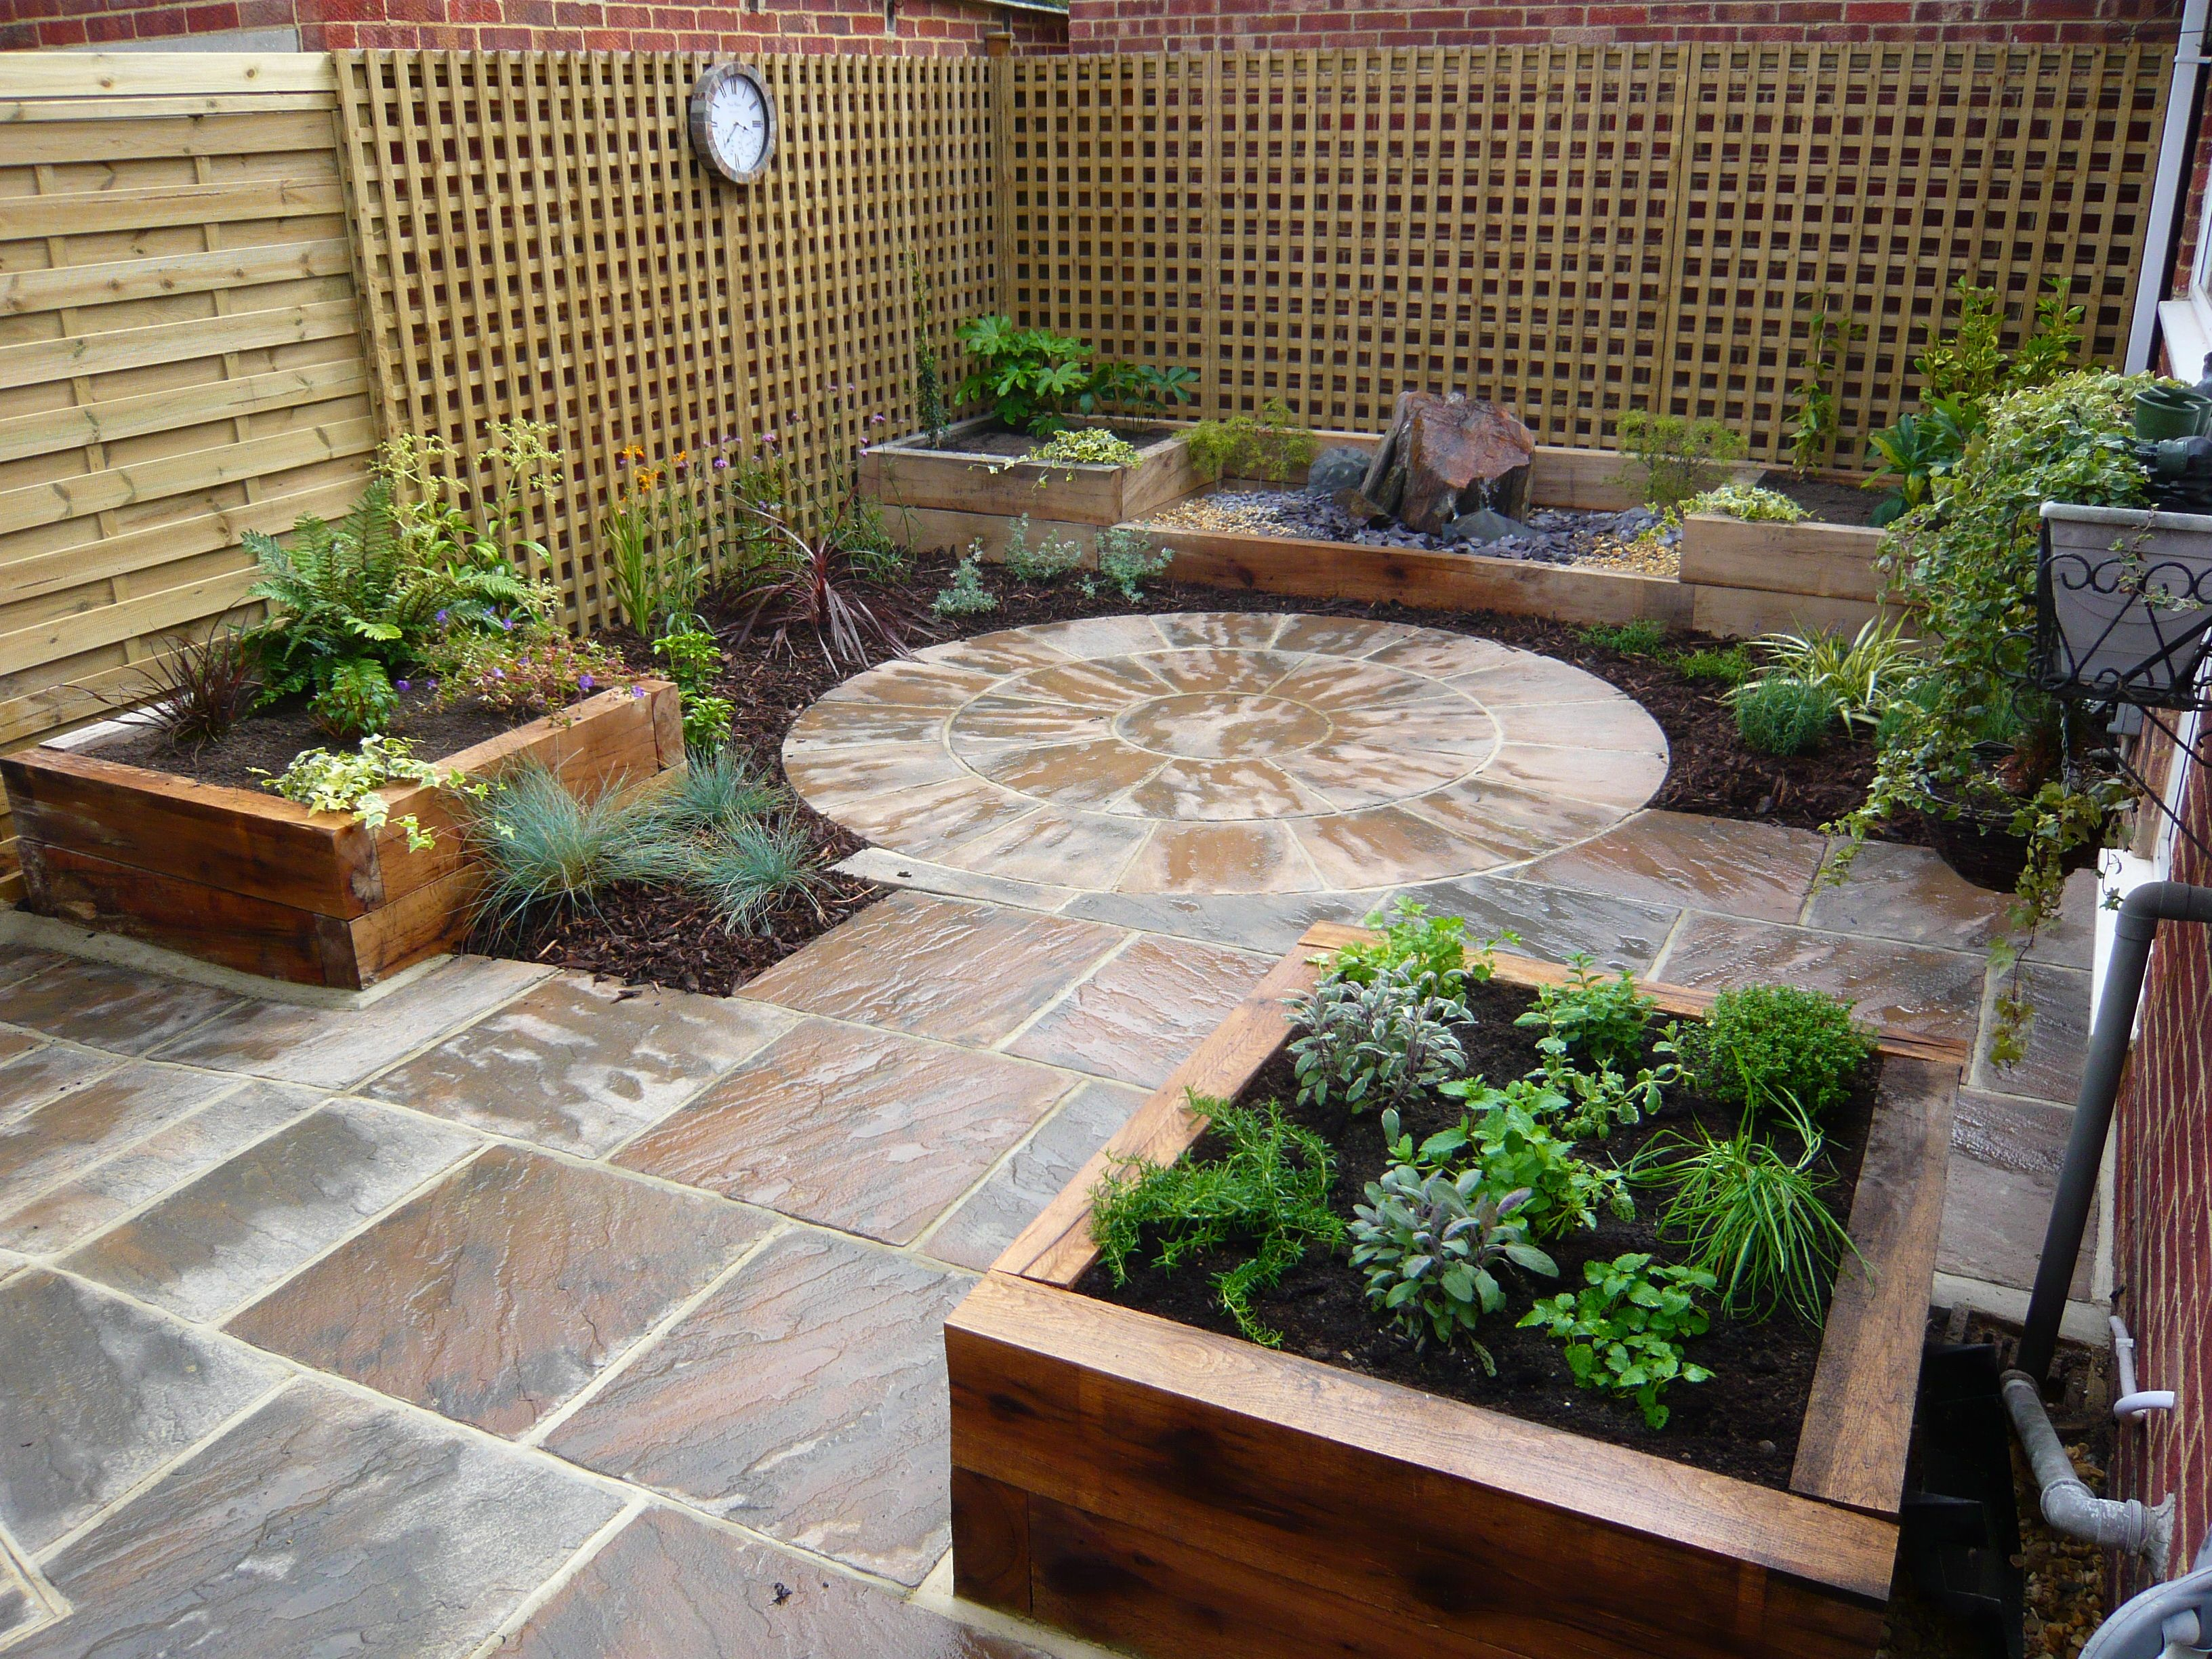 Courtyard garden low maintenance raised beds creating for Low maintenance garden design